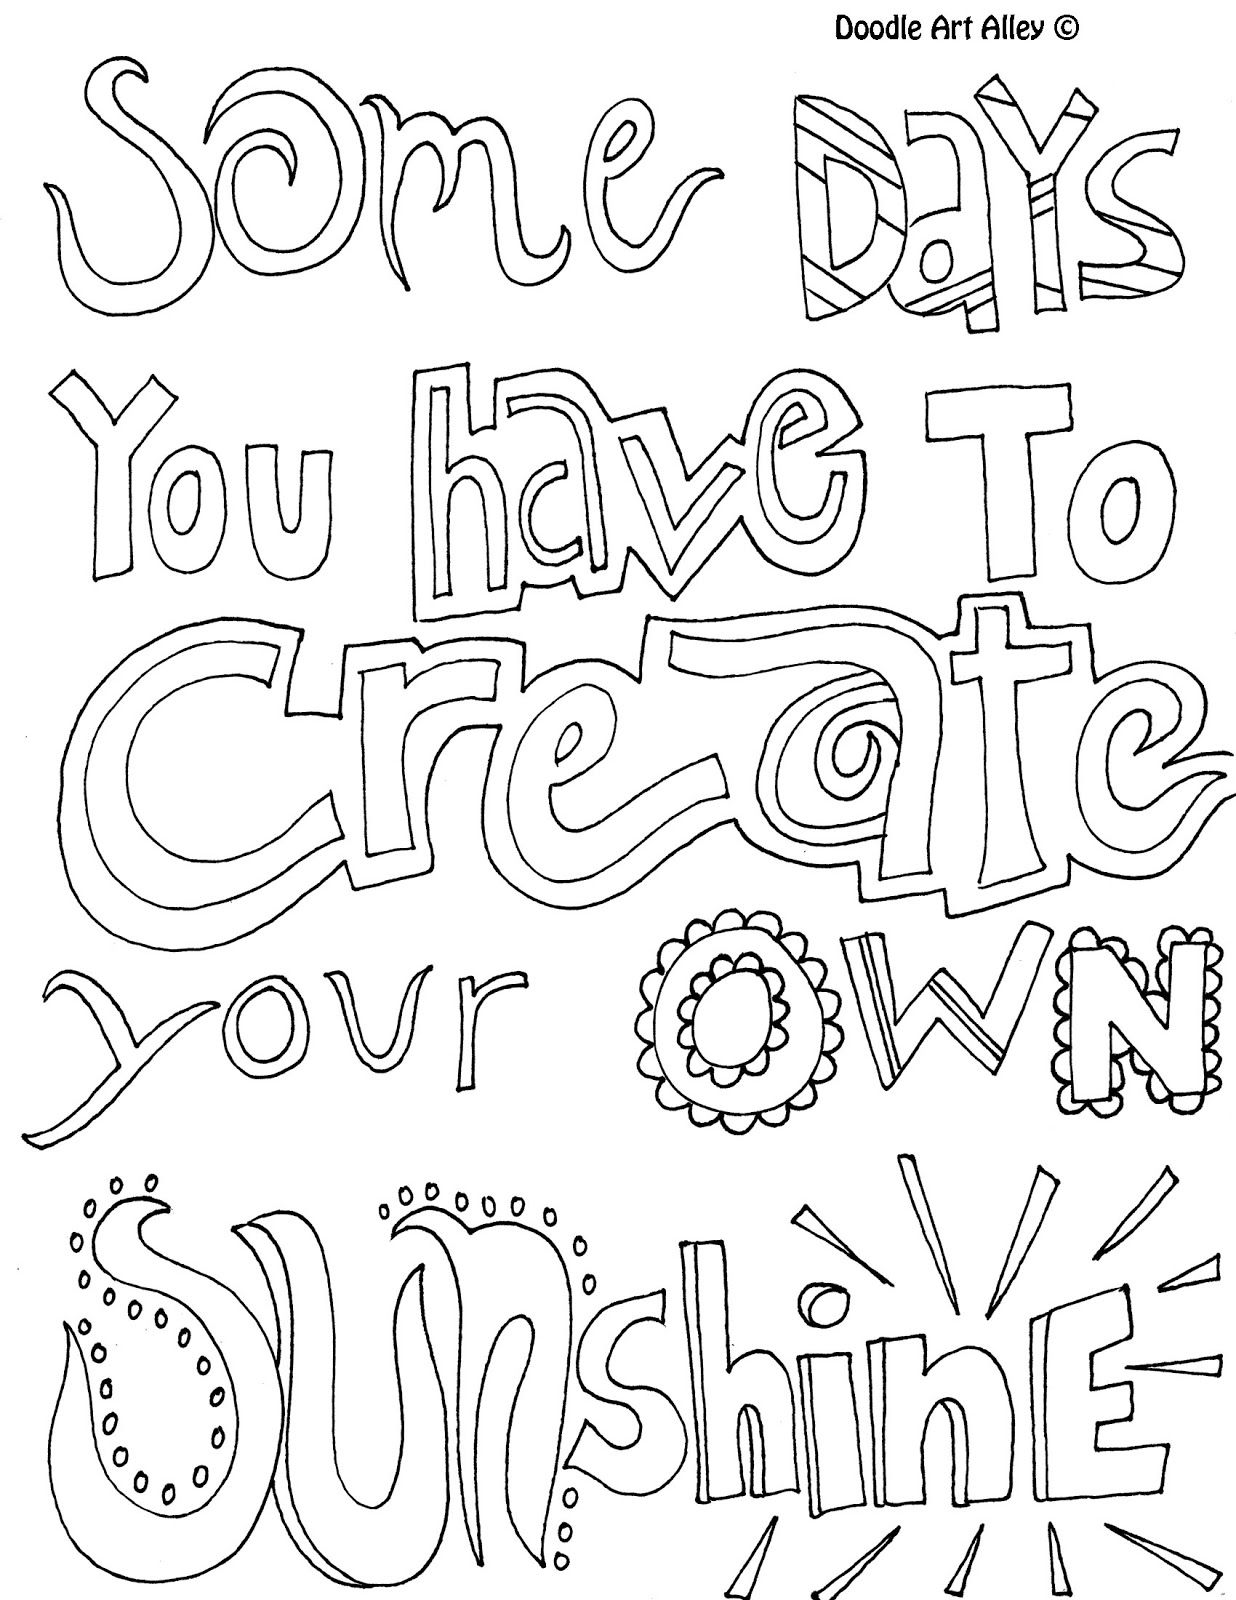 All quotes coloring pages great quotes doodle page great to use in the classroom